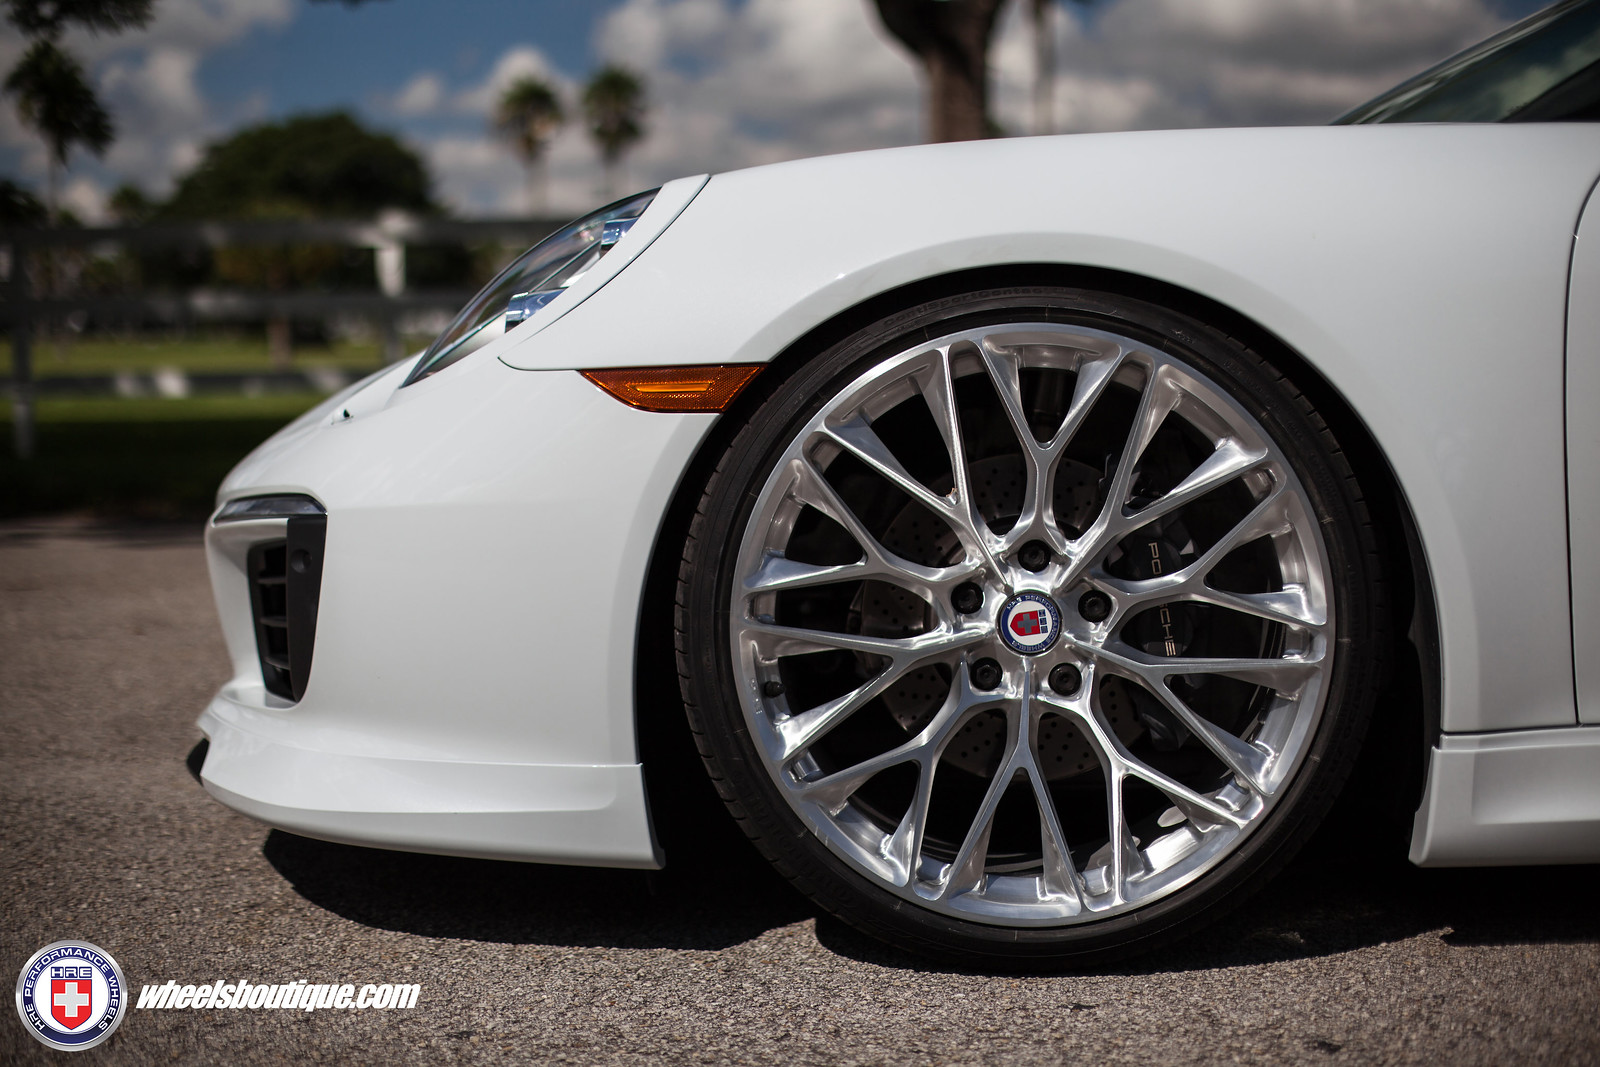 991.2 Porsche Carrera on HRE's Monoblock P200 by Wheels ...